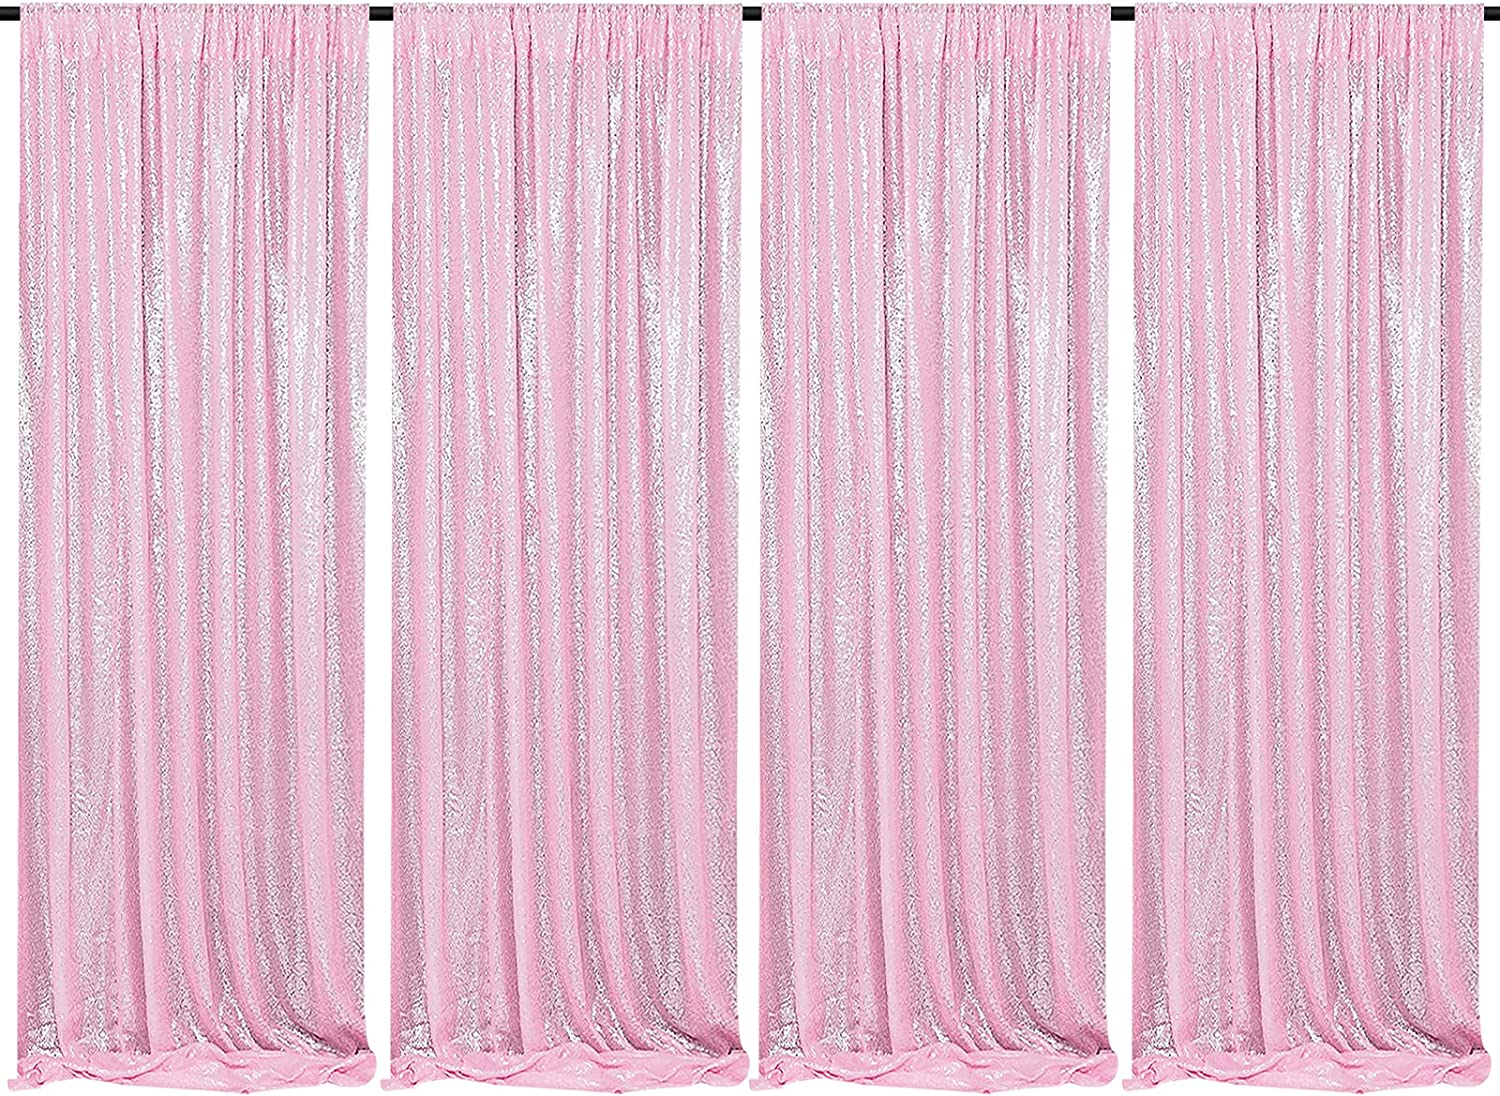 Pink Sequin Curtains 4 Panels 2FTx8FT Sequin Photo Backdrop Wedding Glitter Fabric Backdrops Party Background Photography Drapes